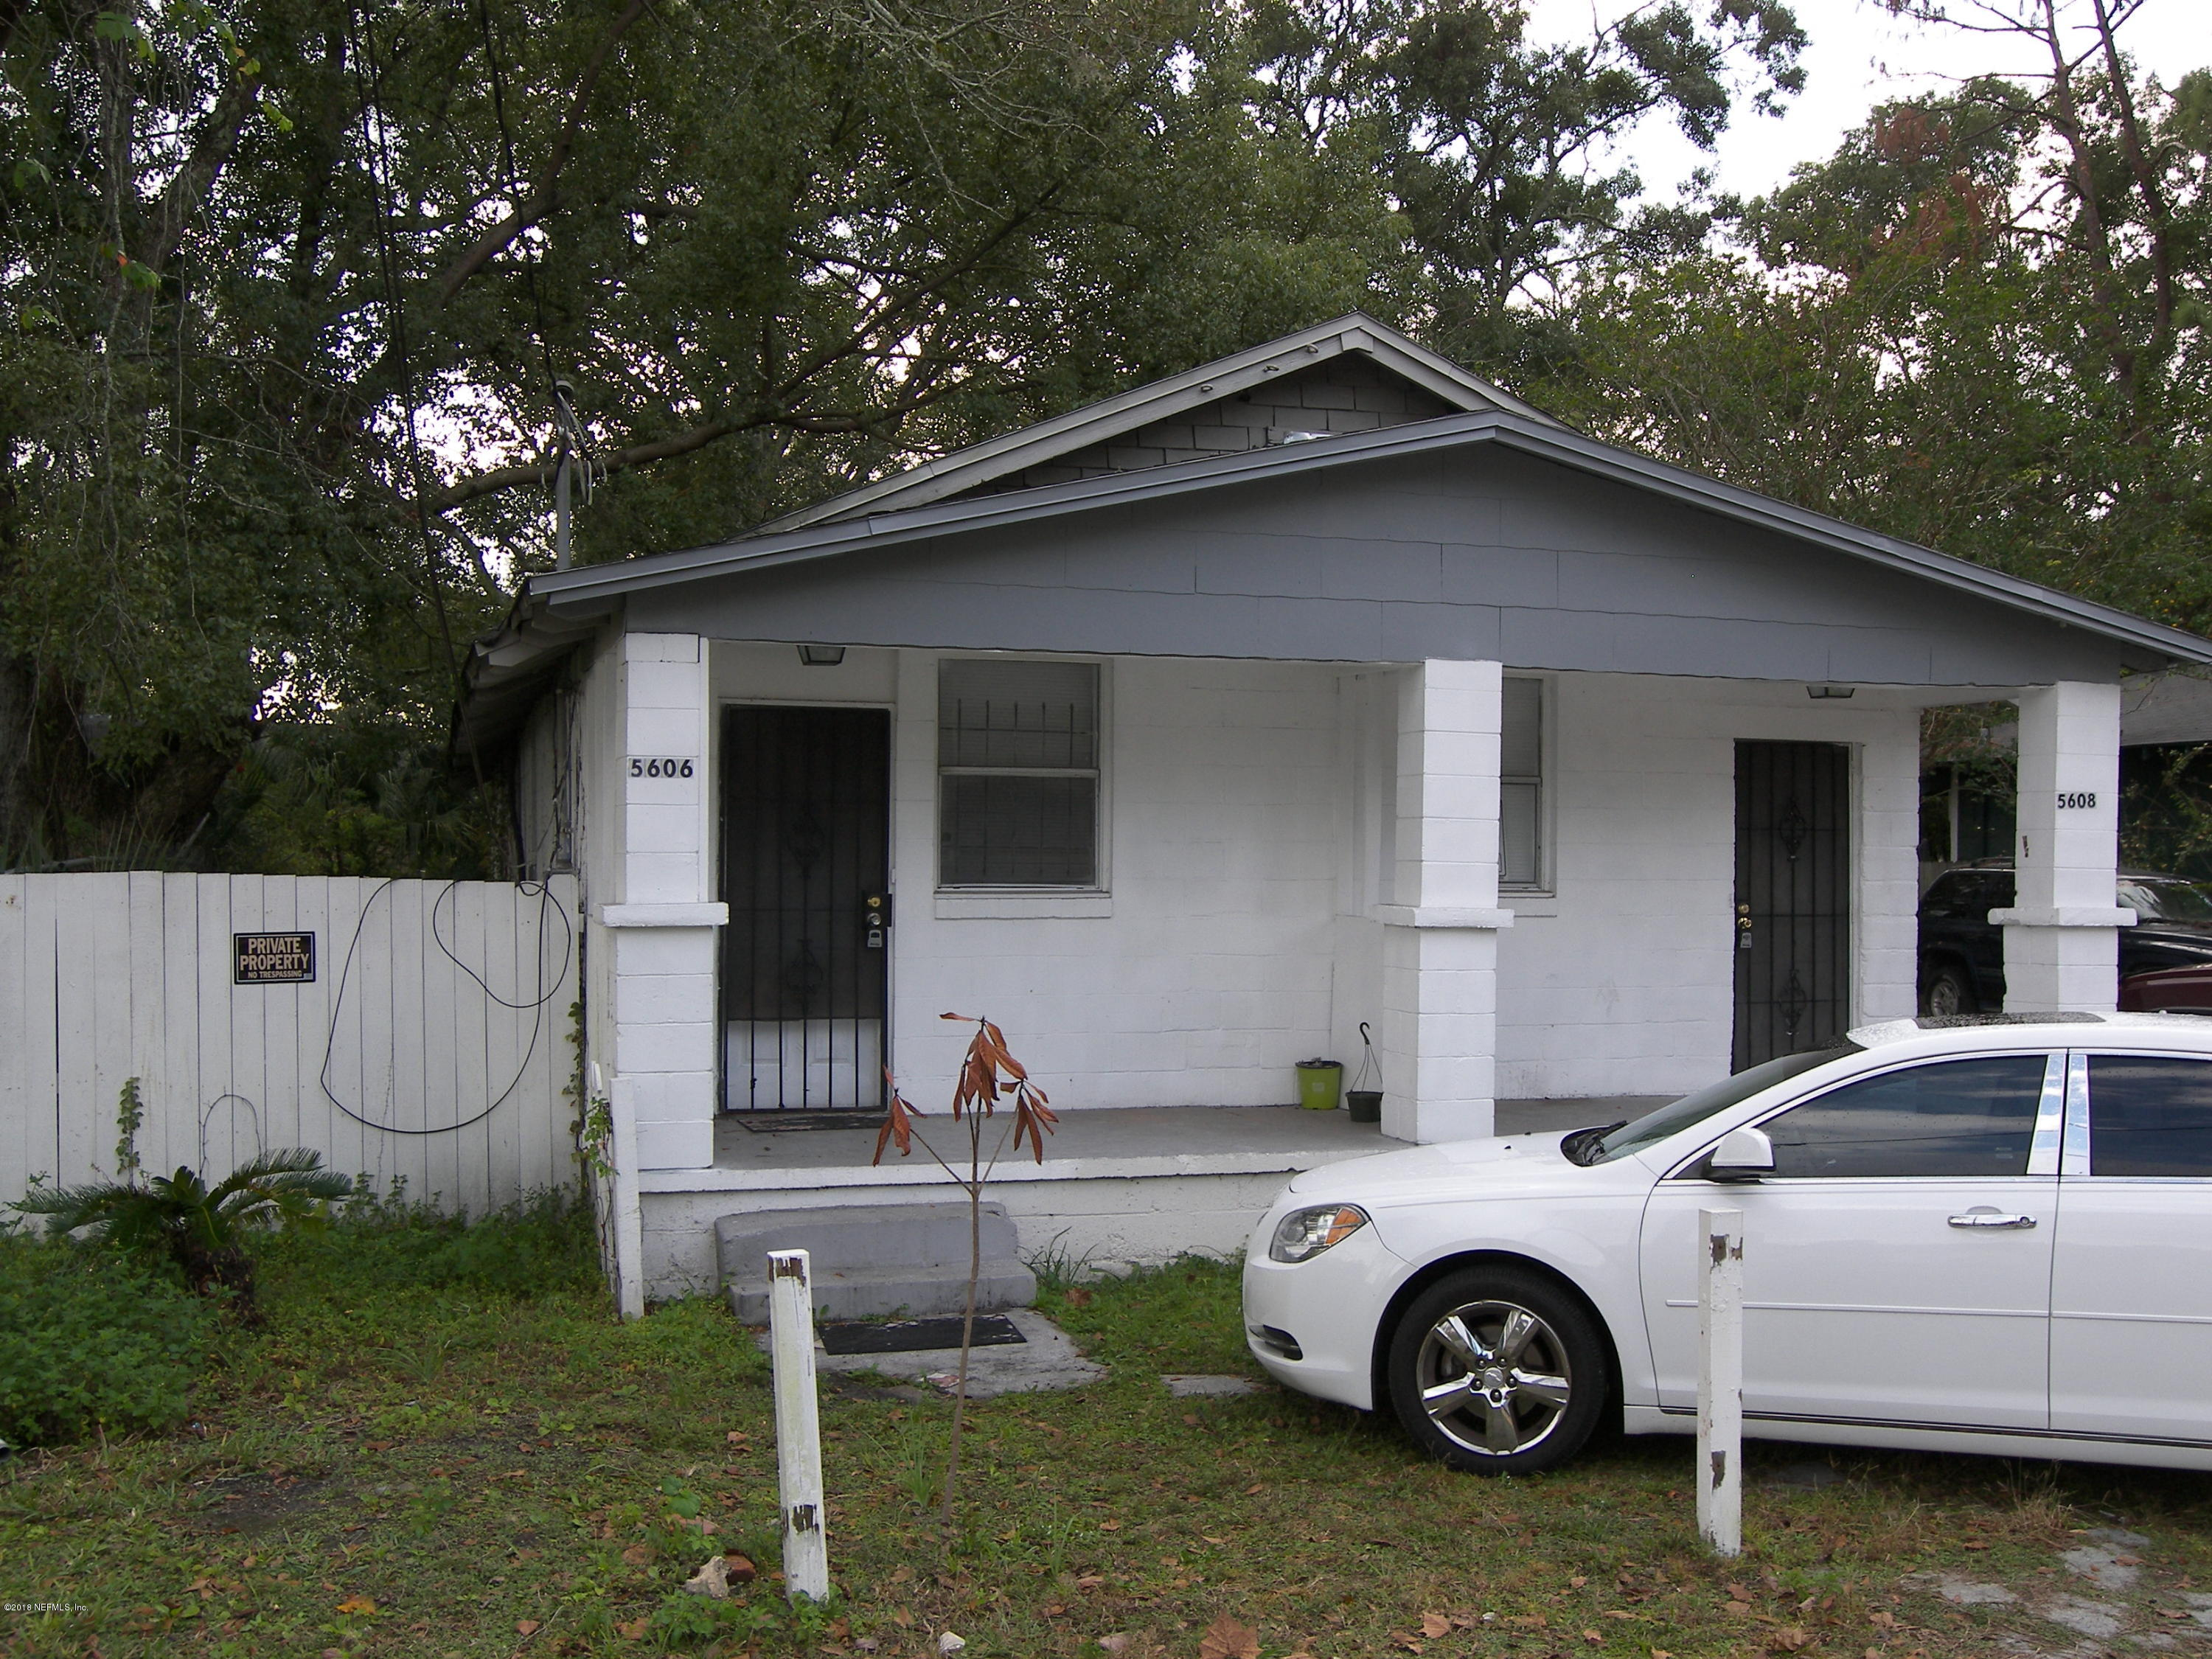 5606 MONCRIEF, JACKSONVILLE, FLORIDA 32209, ,Commercial,For sale,MONCRIEF,967278